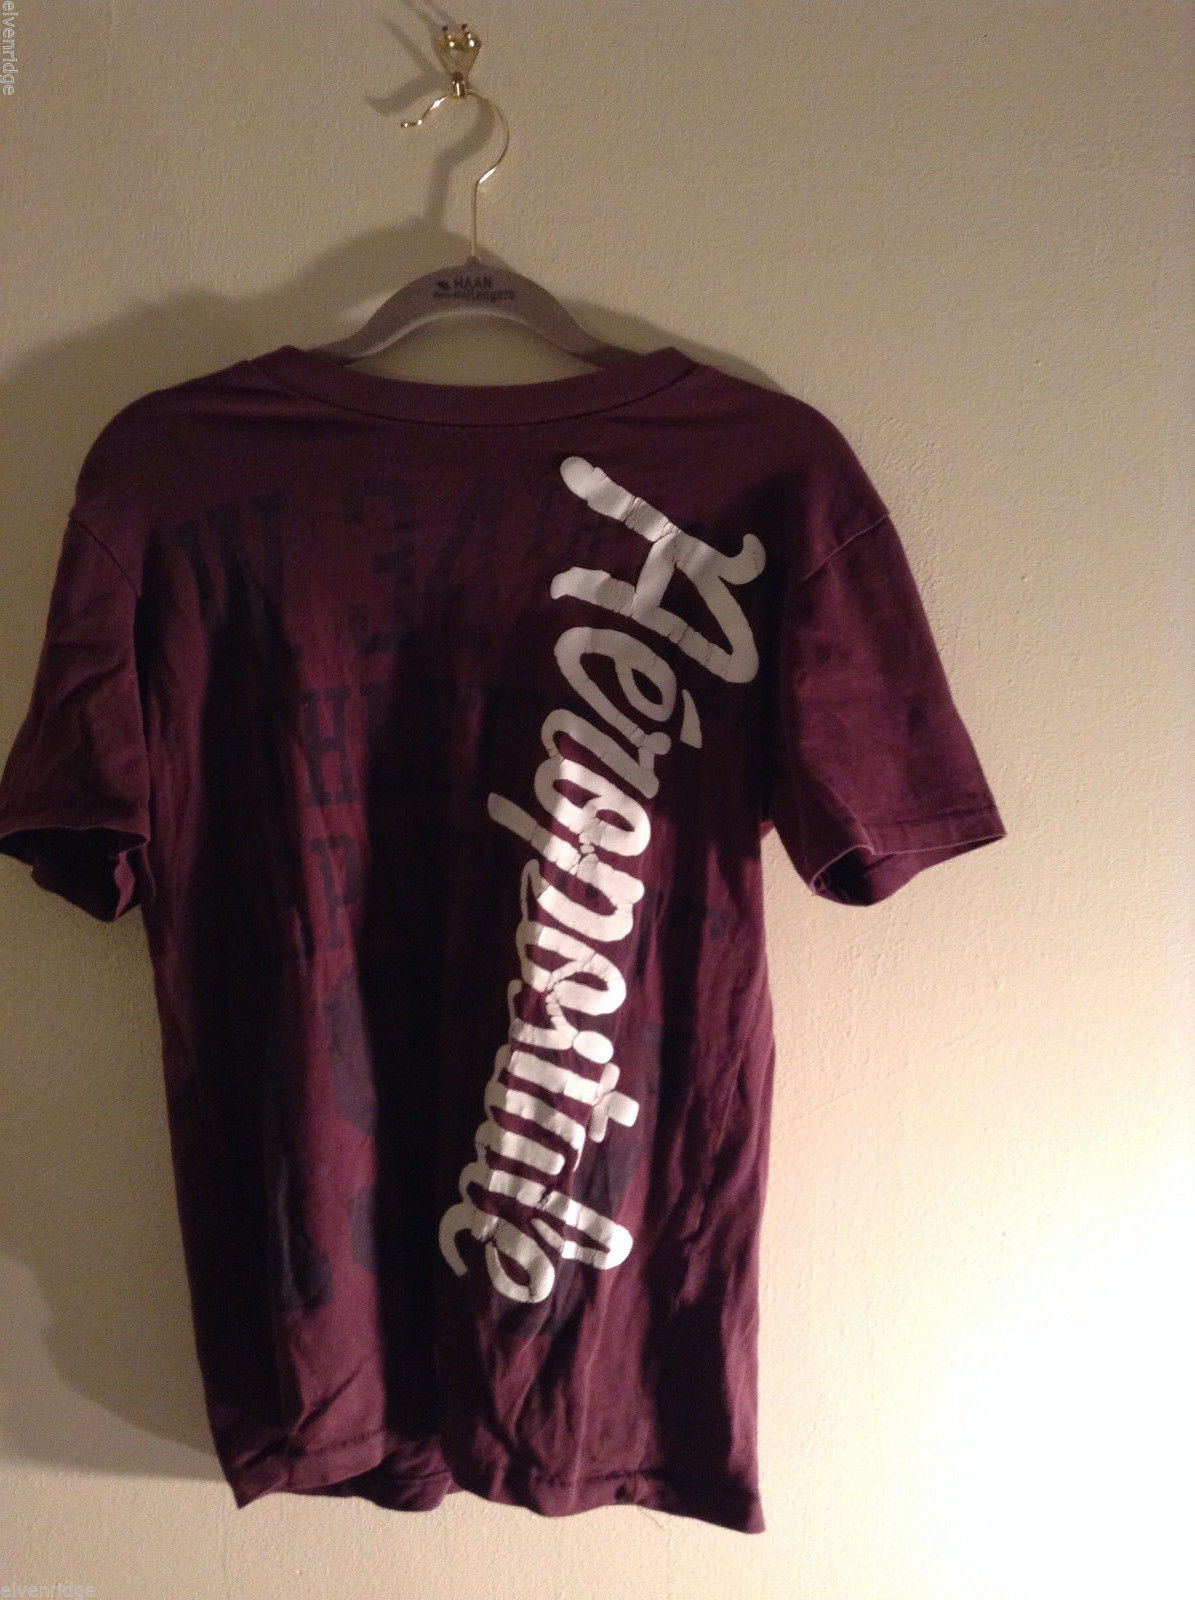 Aeropostale Women's Size XS T-Shirt Burgundy Maroon Short-Sleeve Graphic Tee